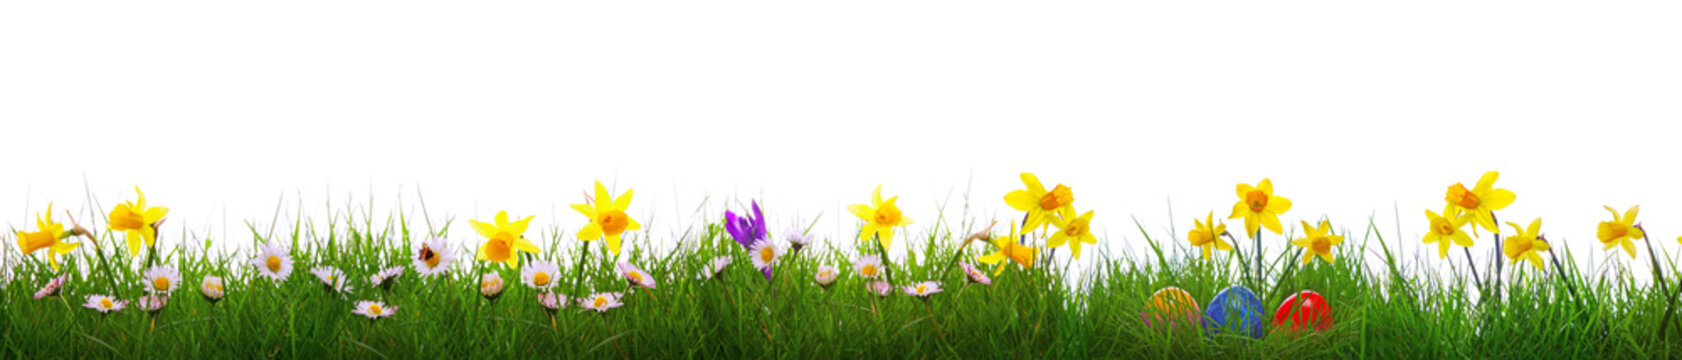 Green grass and yellow narcissus field .Colorful easter eggs.